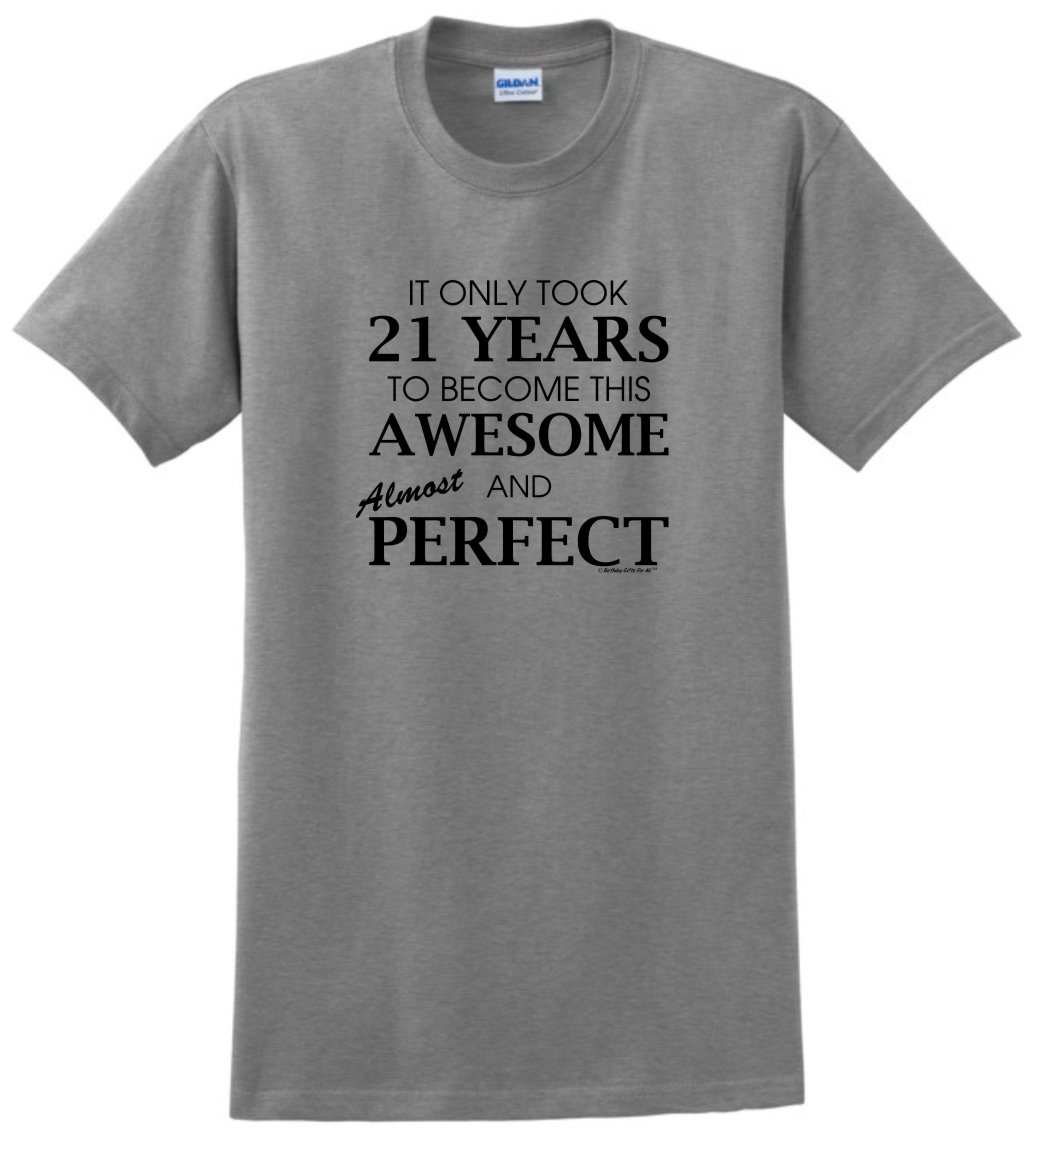 Birthday Party Favors 21st Gifts For All Awesome Almost Perfect T Shirt XL SpGry Apparel